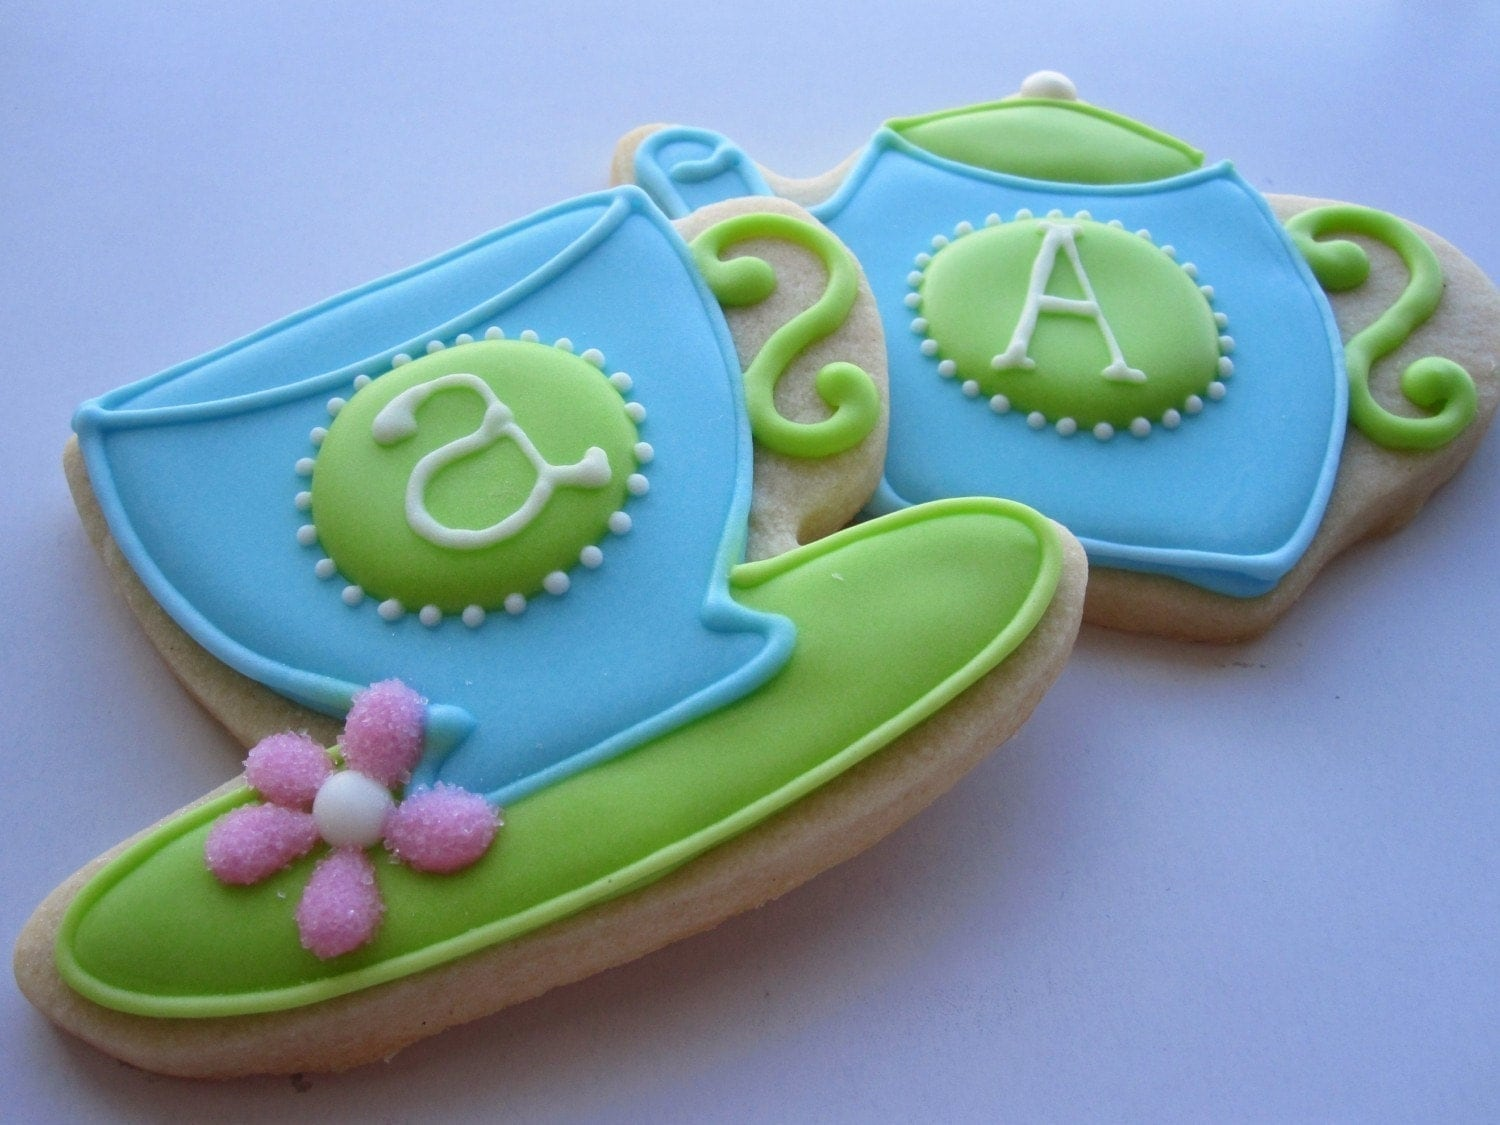 AFTERNOON TEA Teacup and Teapot Sugar Cookie Party Favors